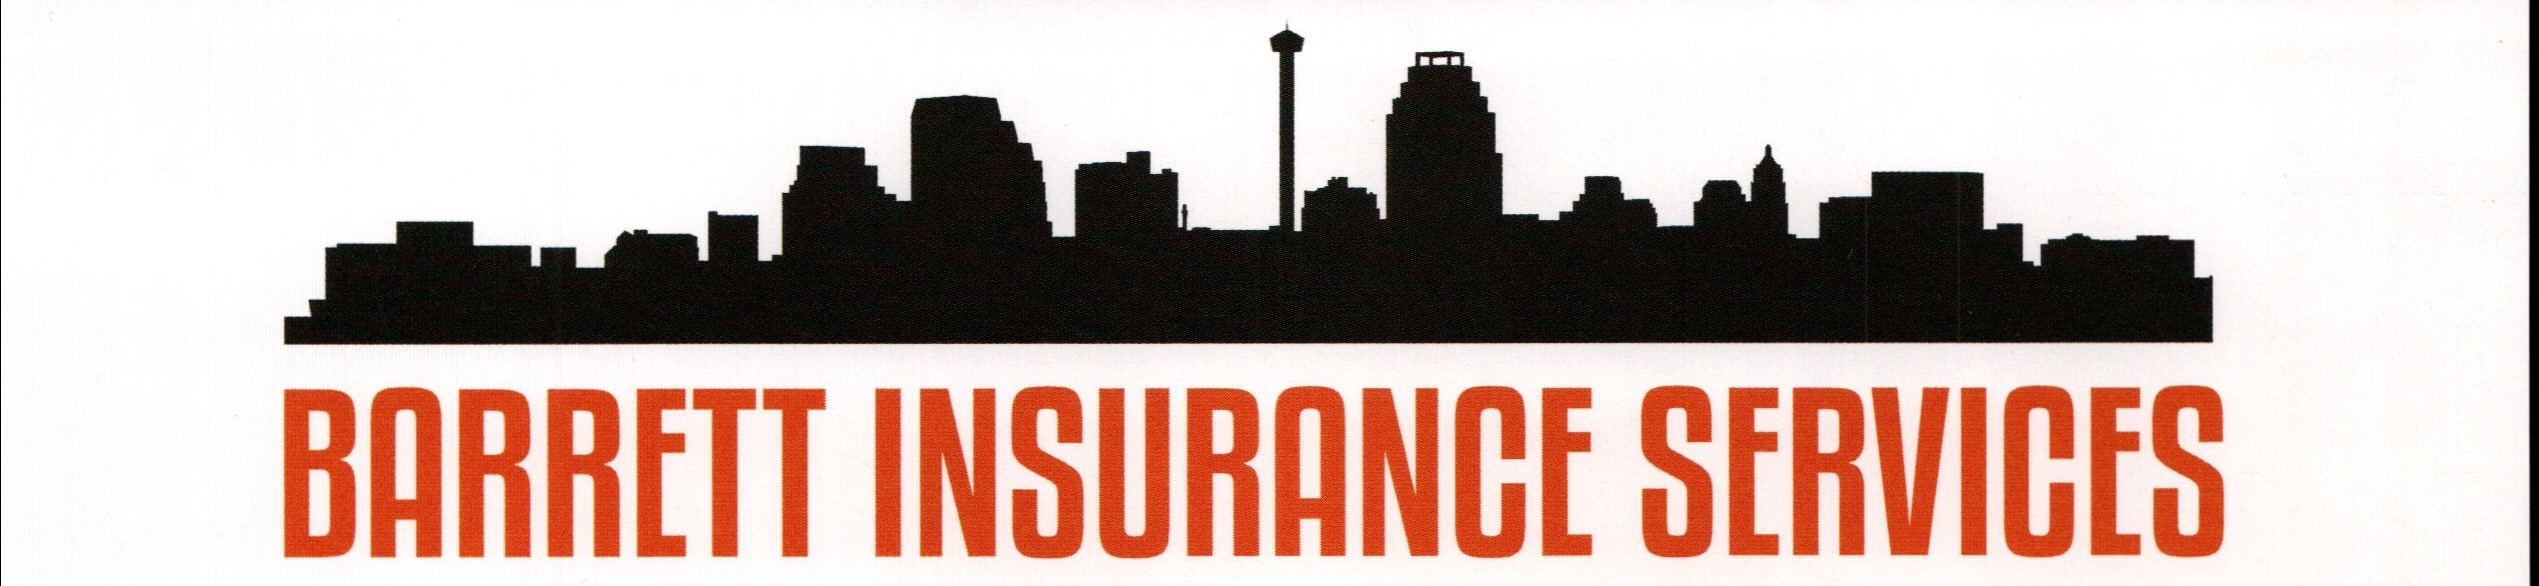 Barrett Insurance logo